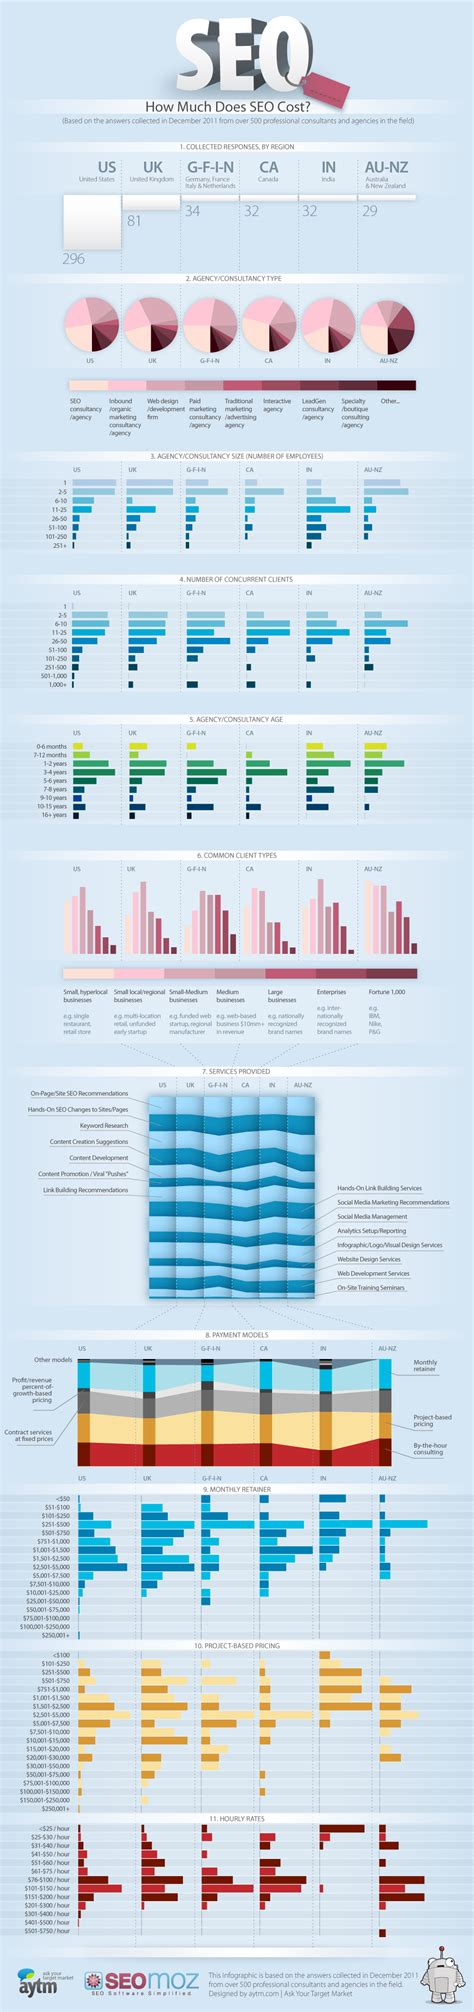 how much does a survey cost when buying a house infographic how much does seo cost